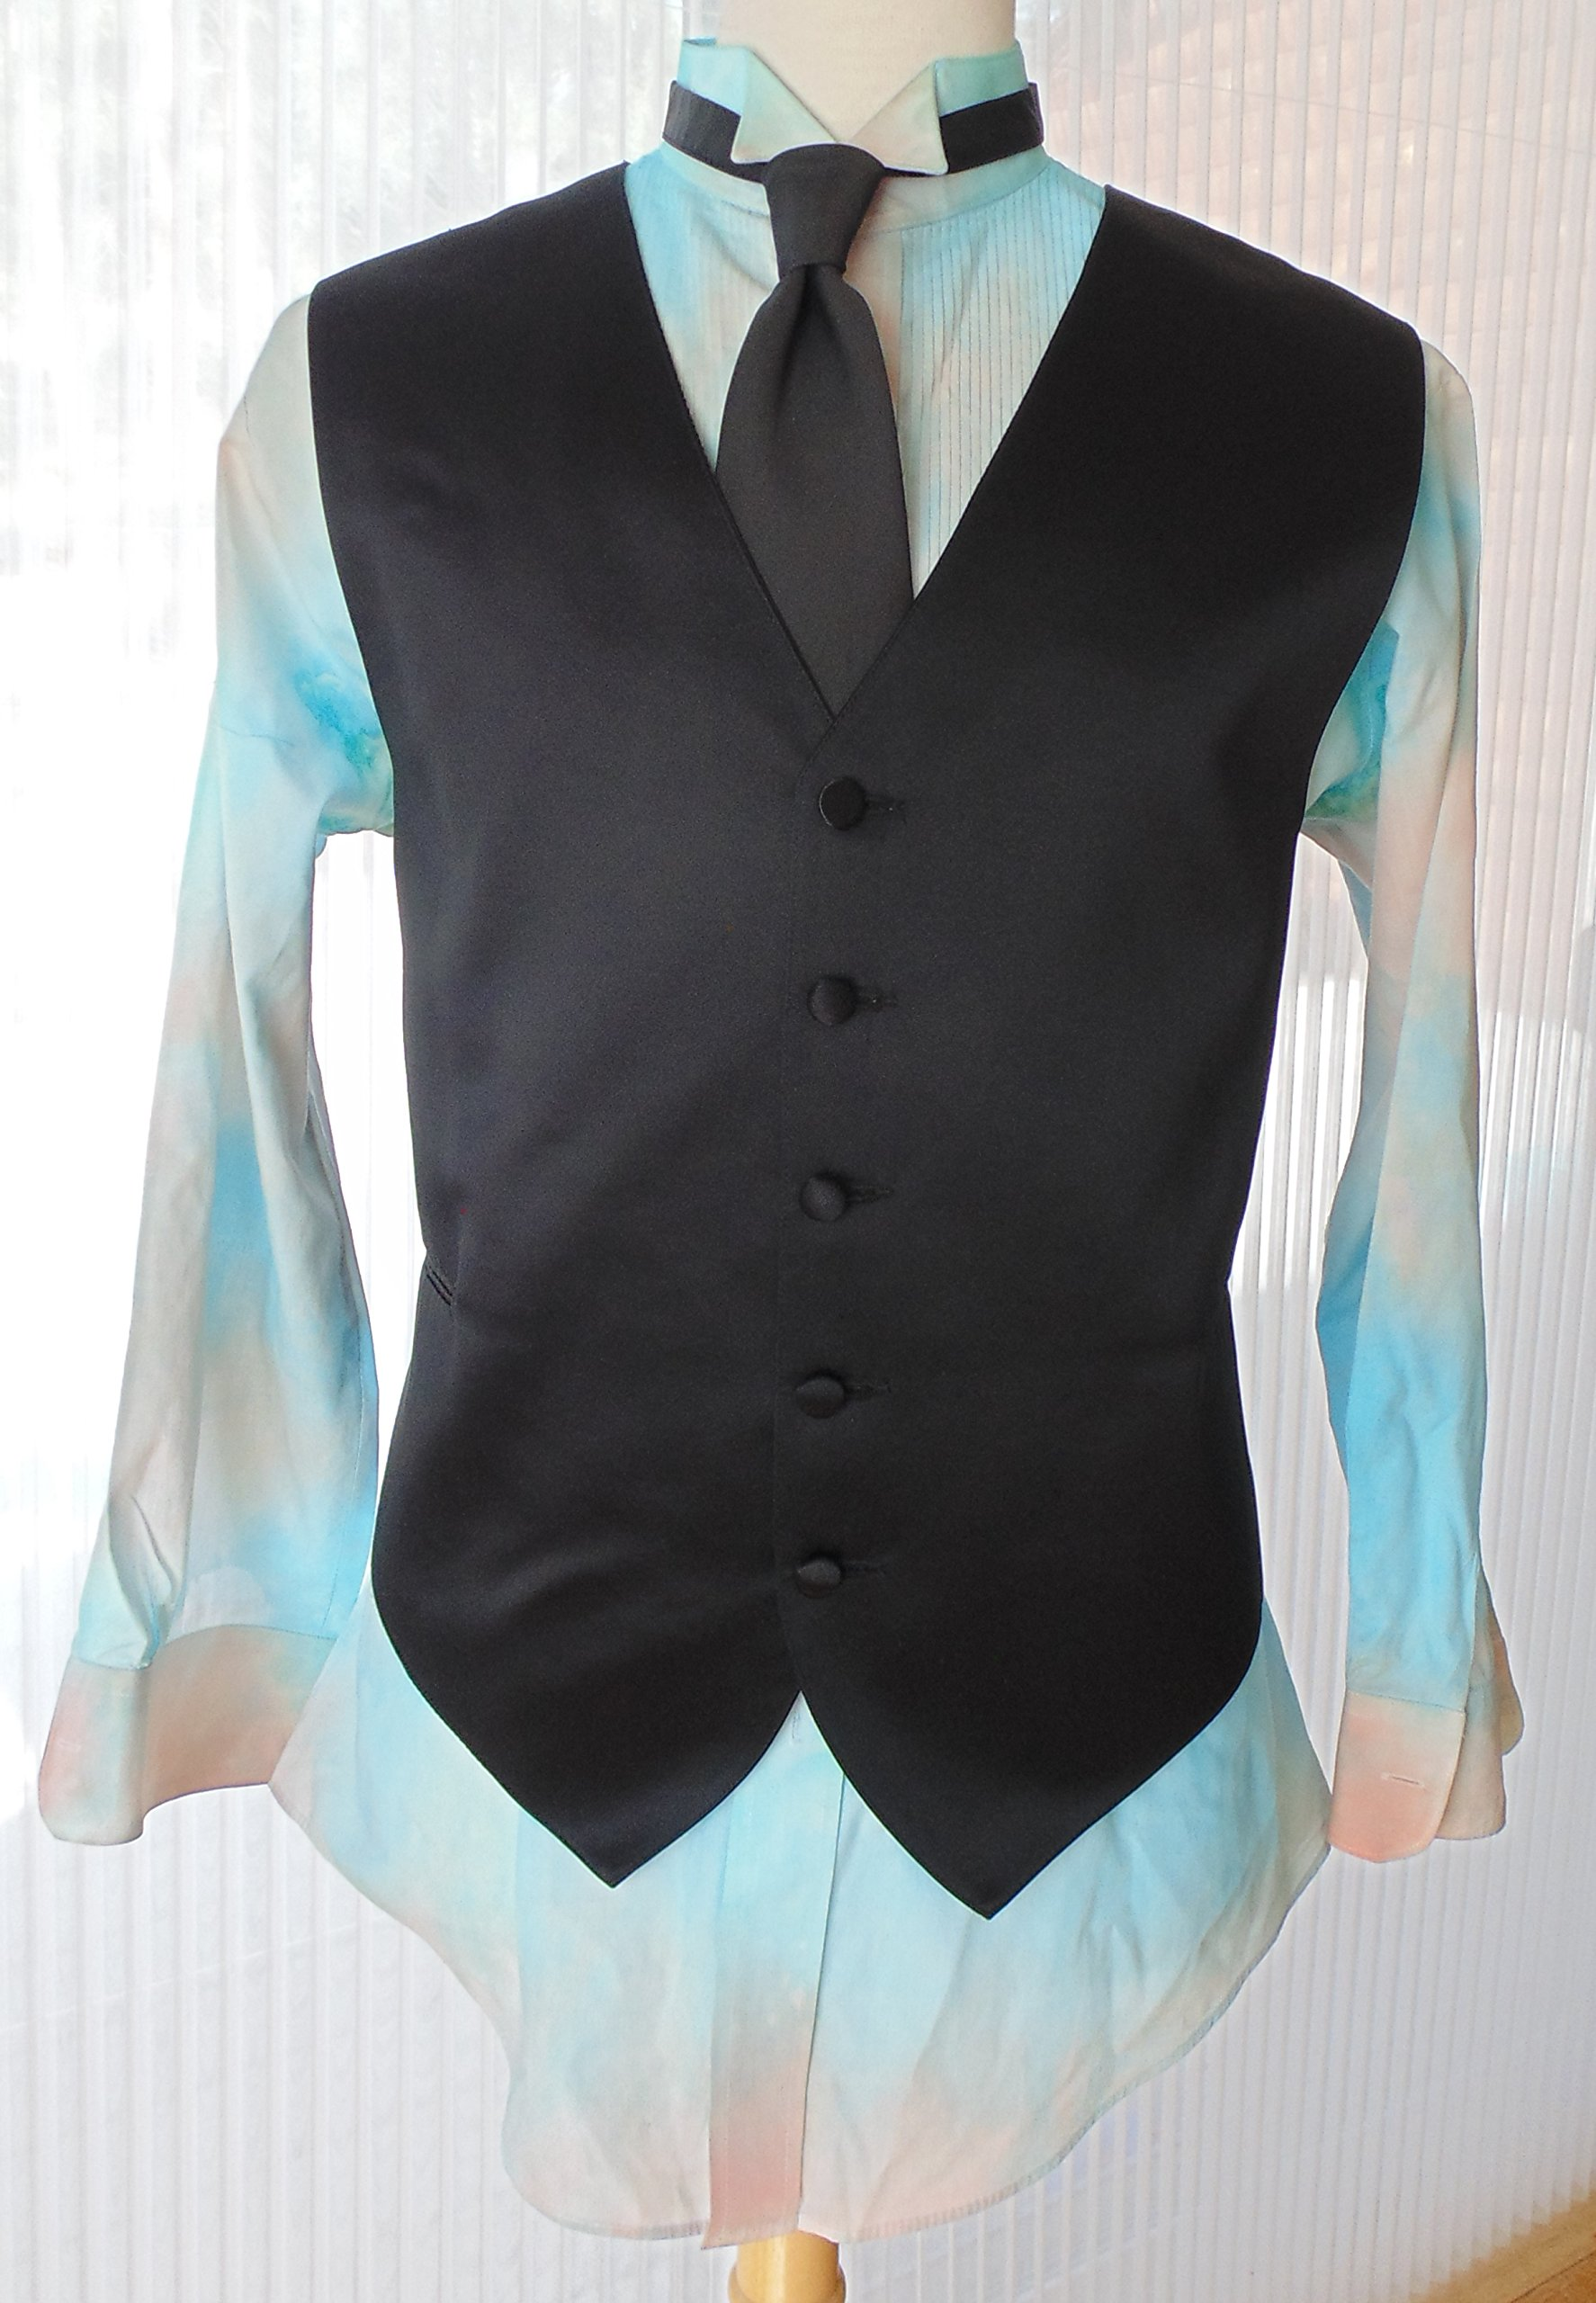 Men's L 32-33 Hand Tie Dye Tuxedo Shirt in Shade of Water Color Blue and Sherbet Orange